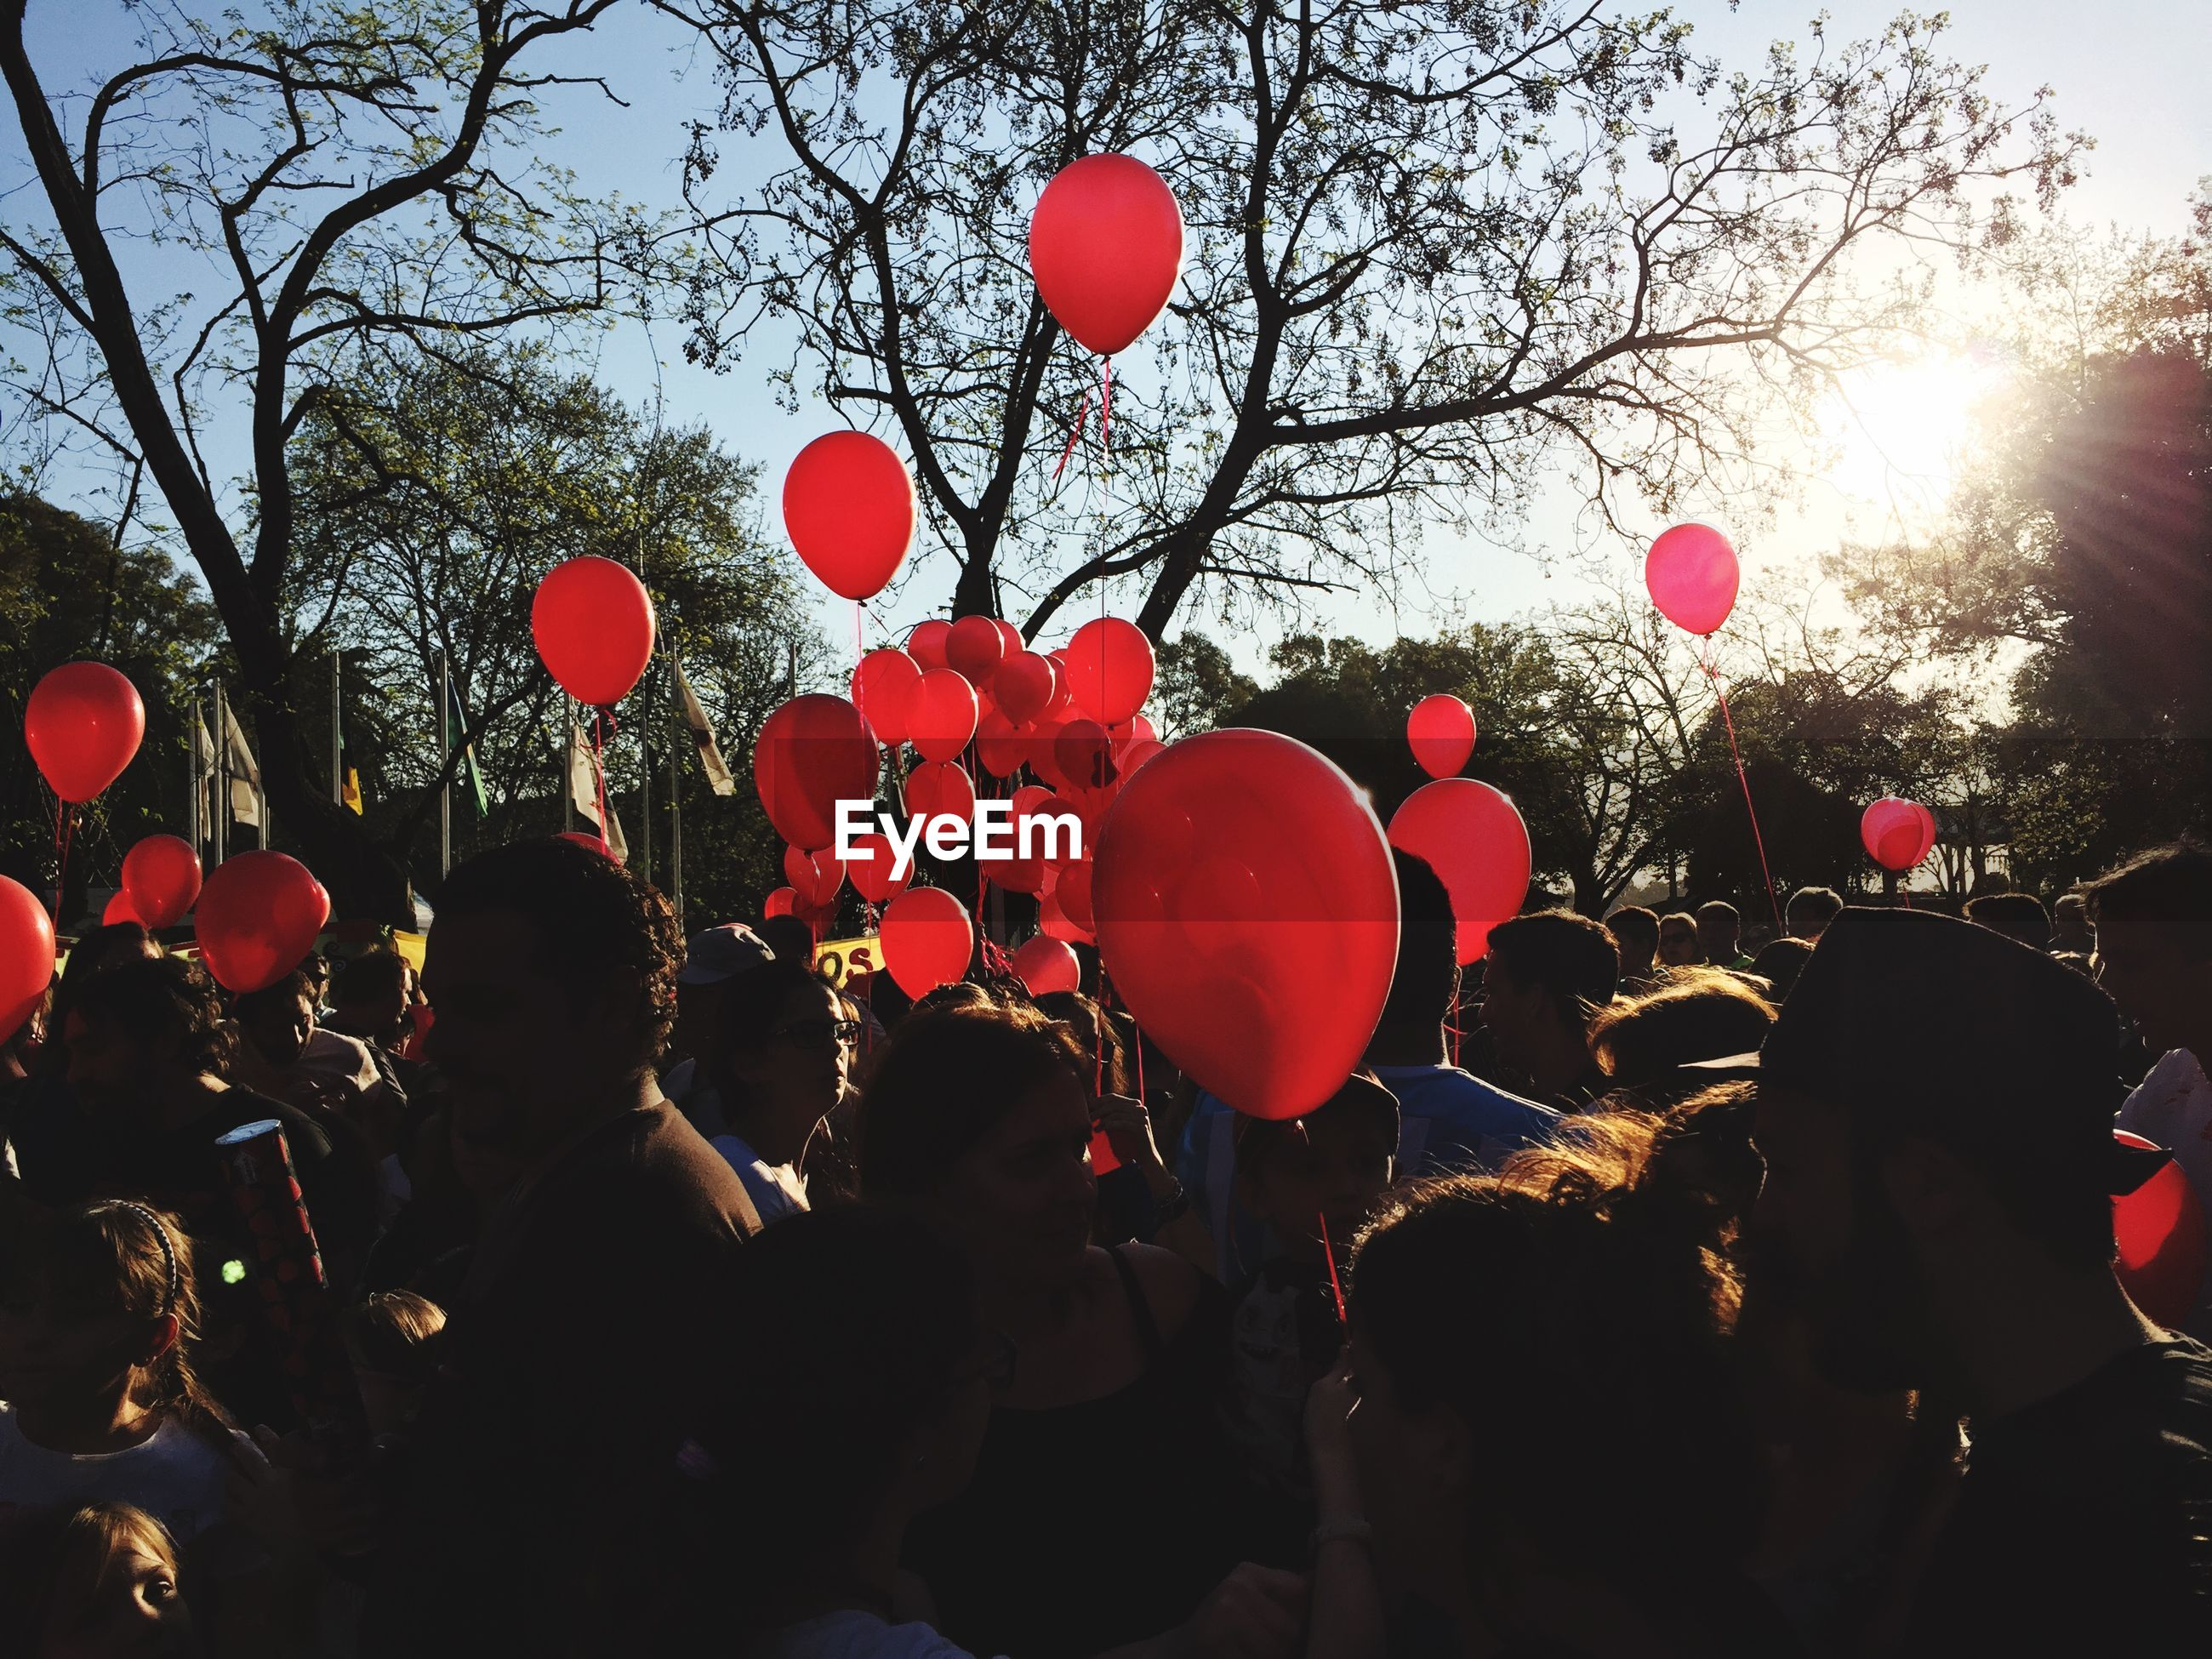 Crowd with red balloon against trees